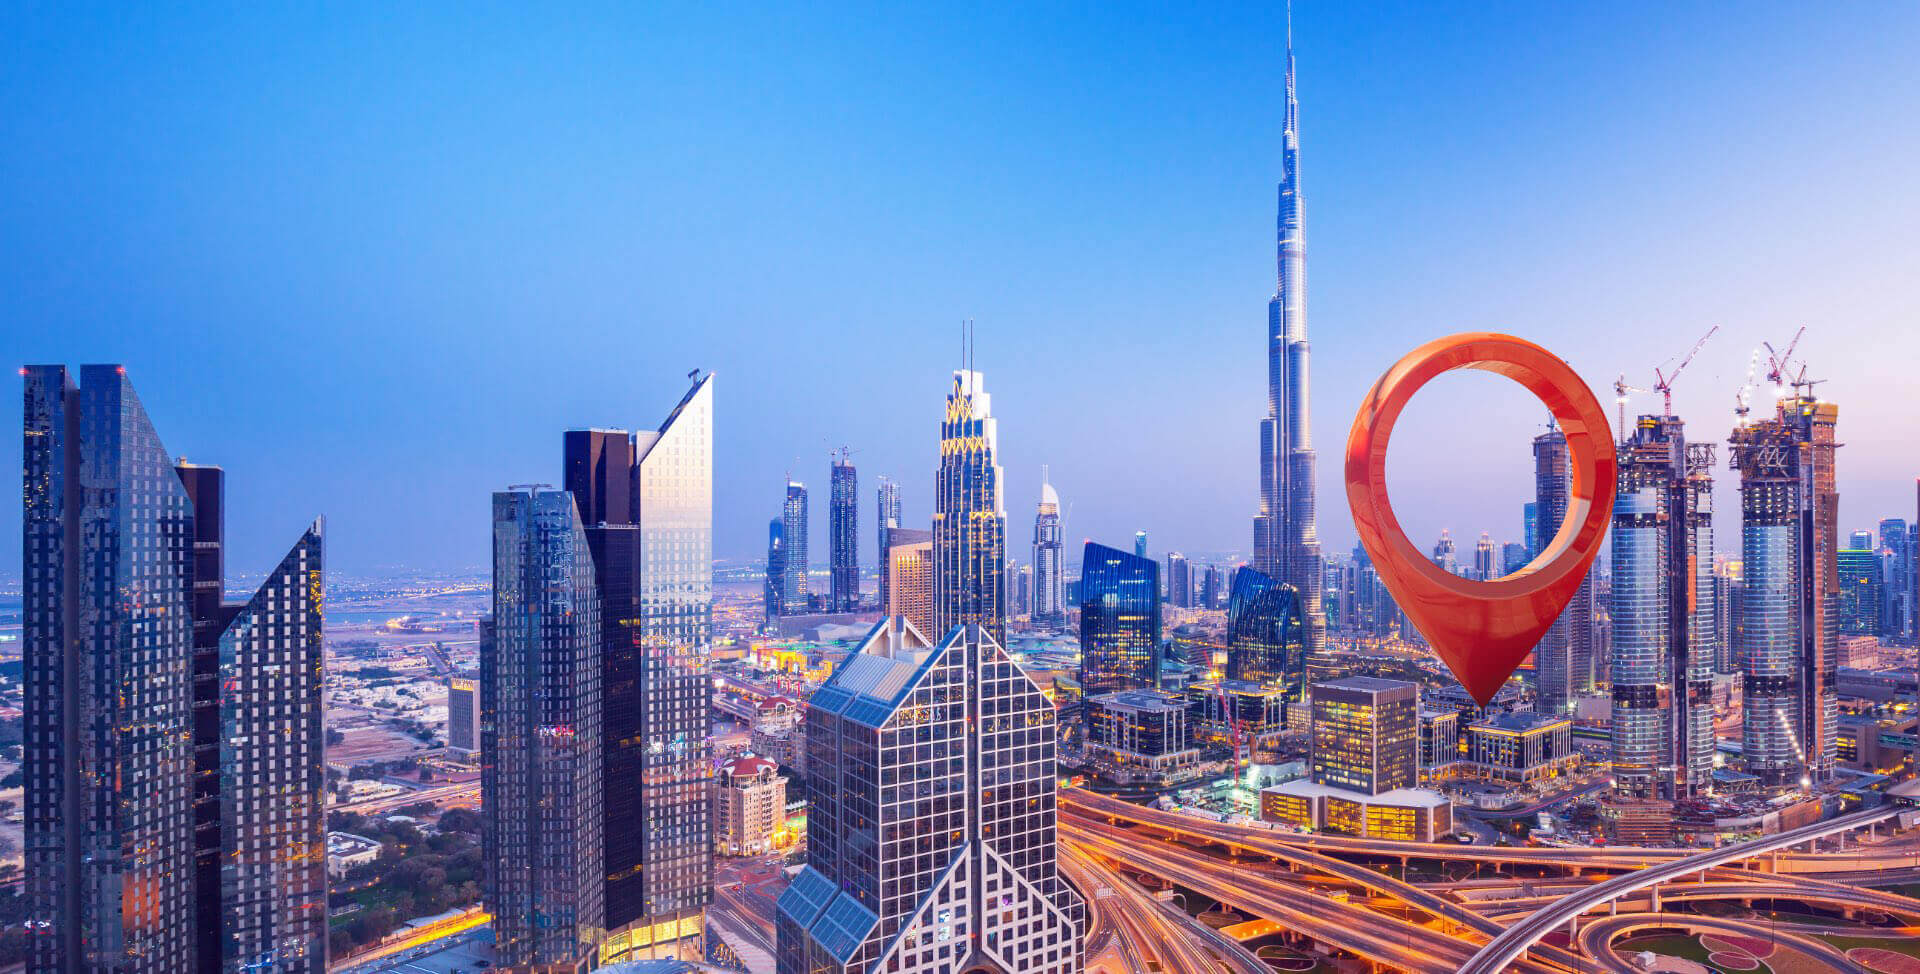 ArabyAds launched in Dubai, UAE as the business HQ